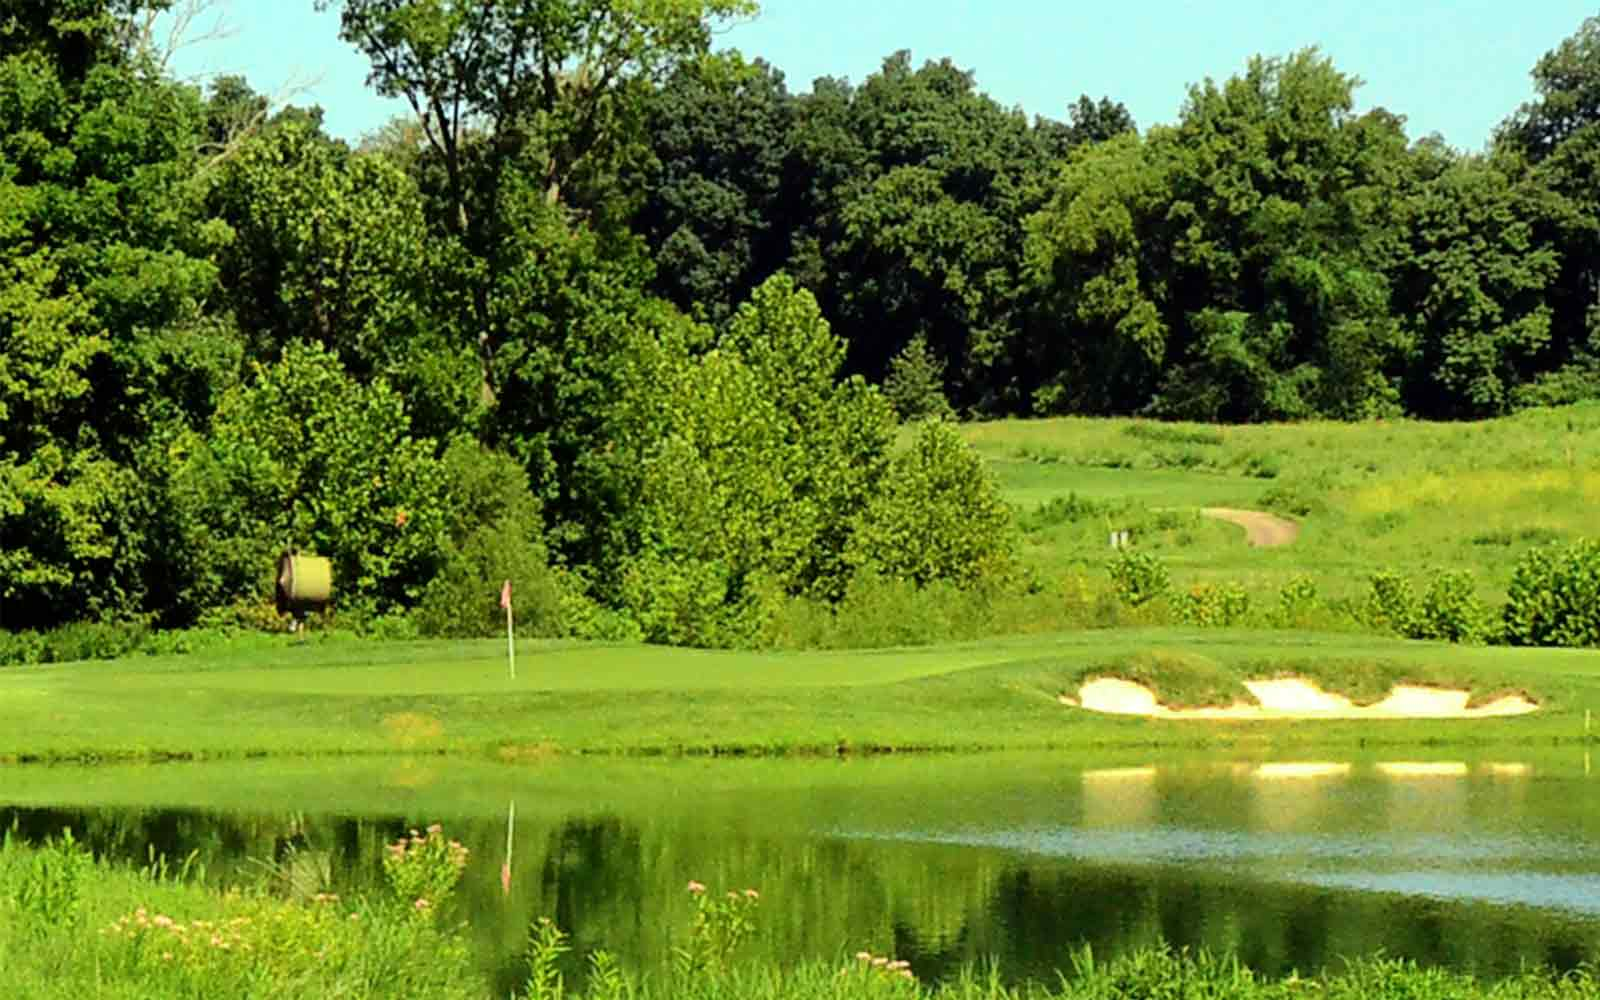 Dalhousie Golf Club. Best Golf Courses in Cape Girardeau, Missouri